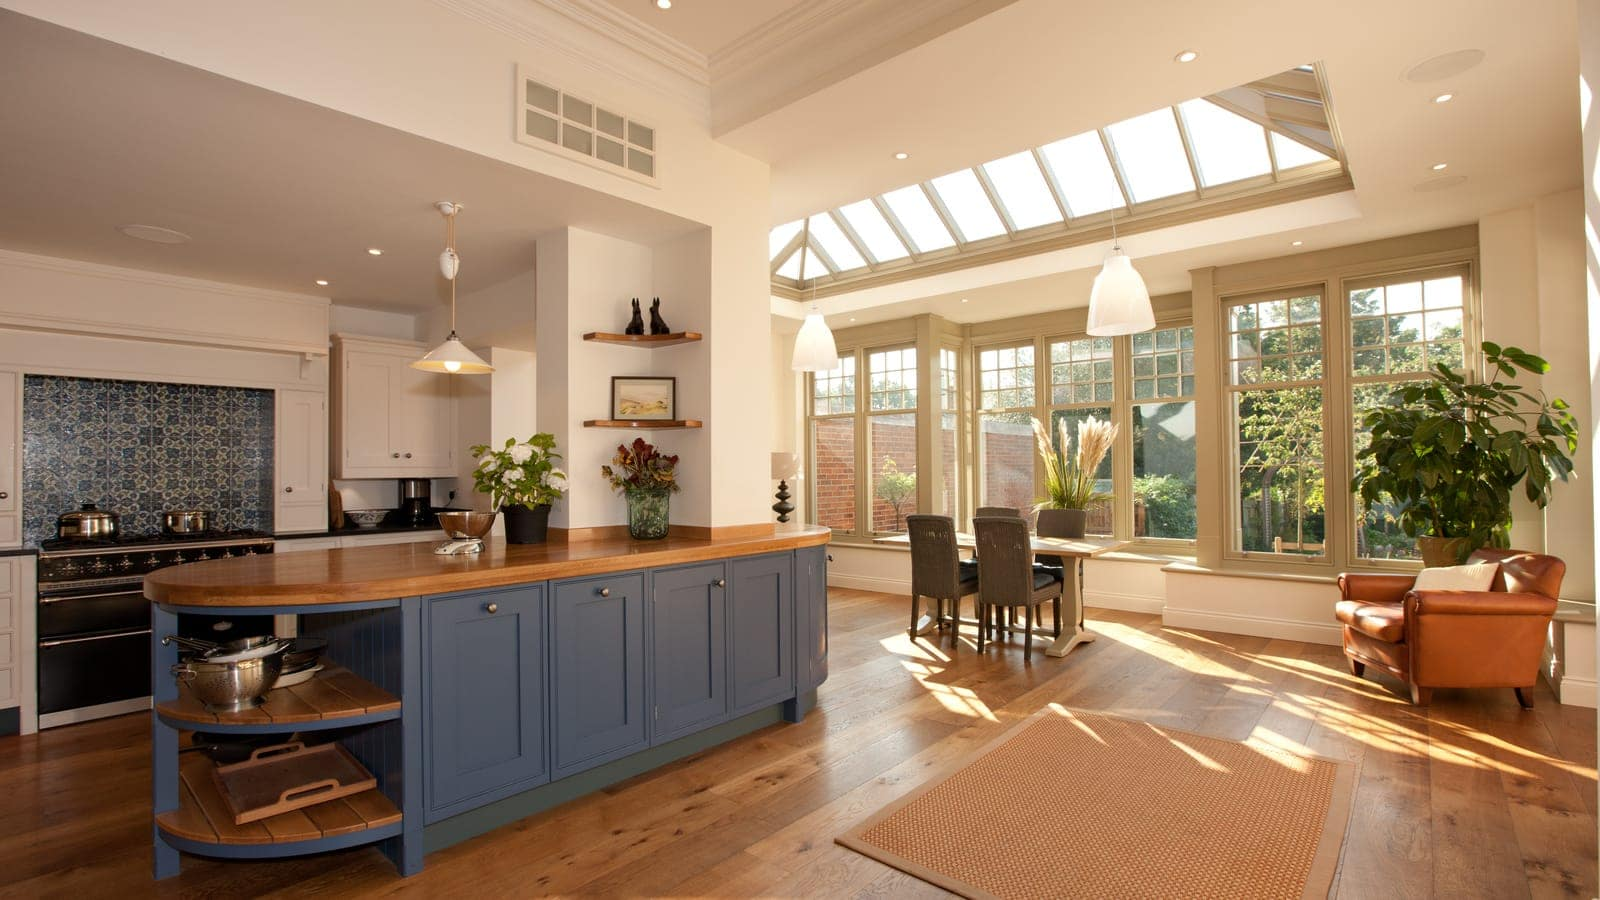 Open plan kitchen and dining area inside large orangery